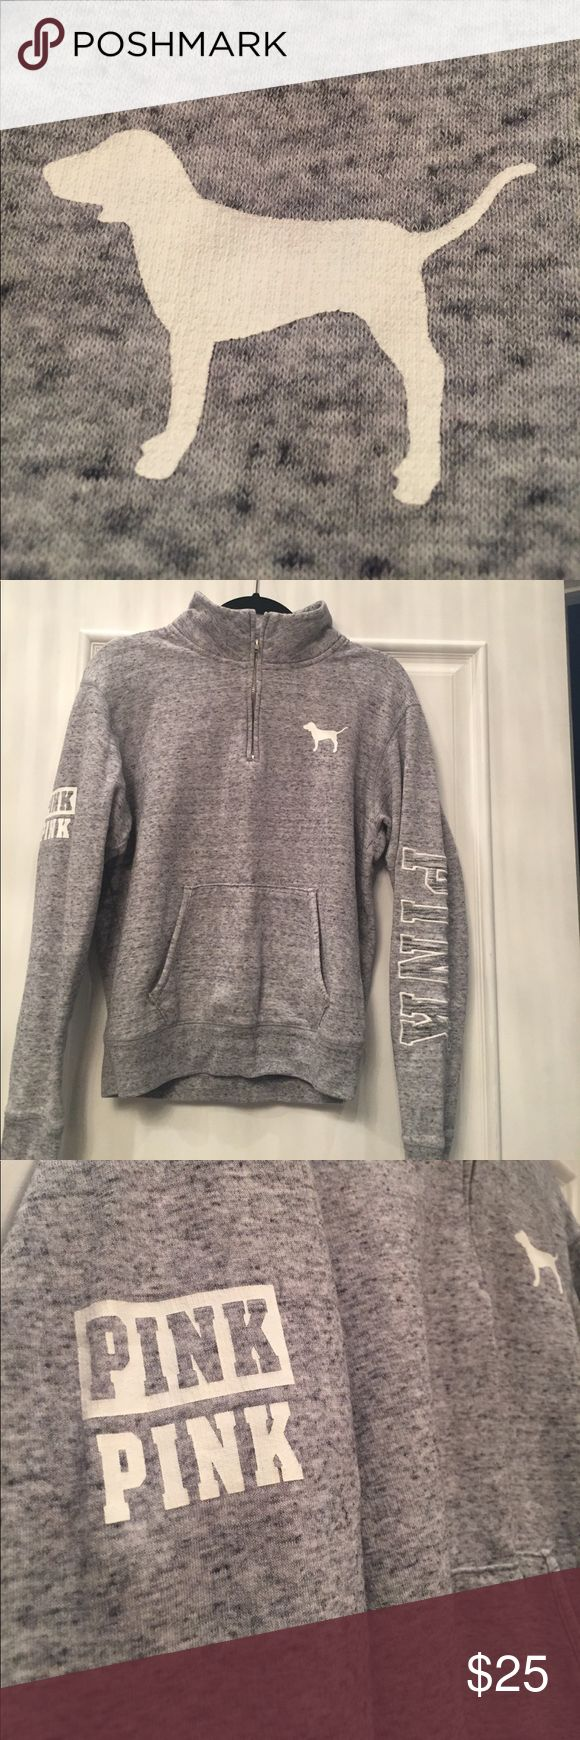 Victoria's Secret Pink  pull over sweat shirt Victoria's Secret Size S pullover Sweatshirt w 1/2 zip collar in Heather gray. No stains. No flaws PINK Victoria's Secret Other